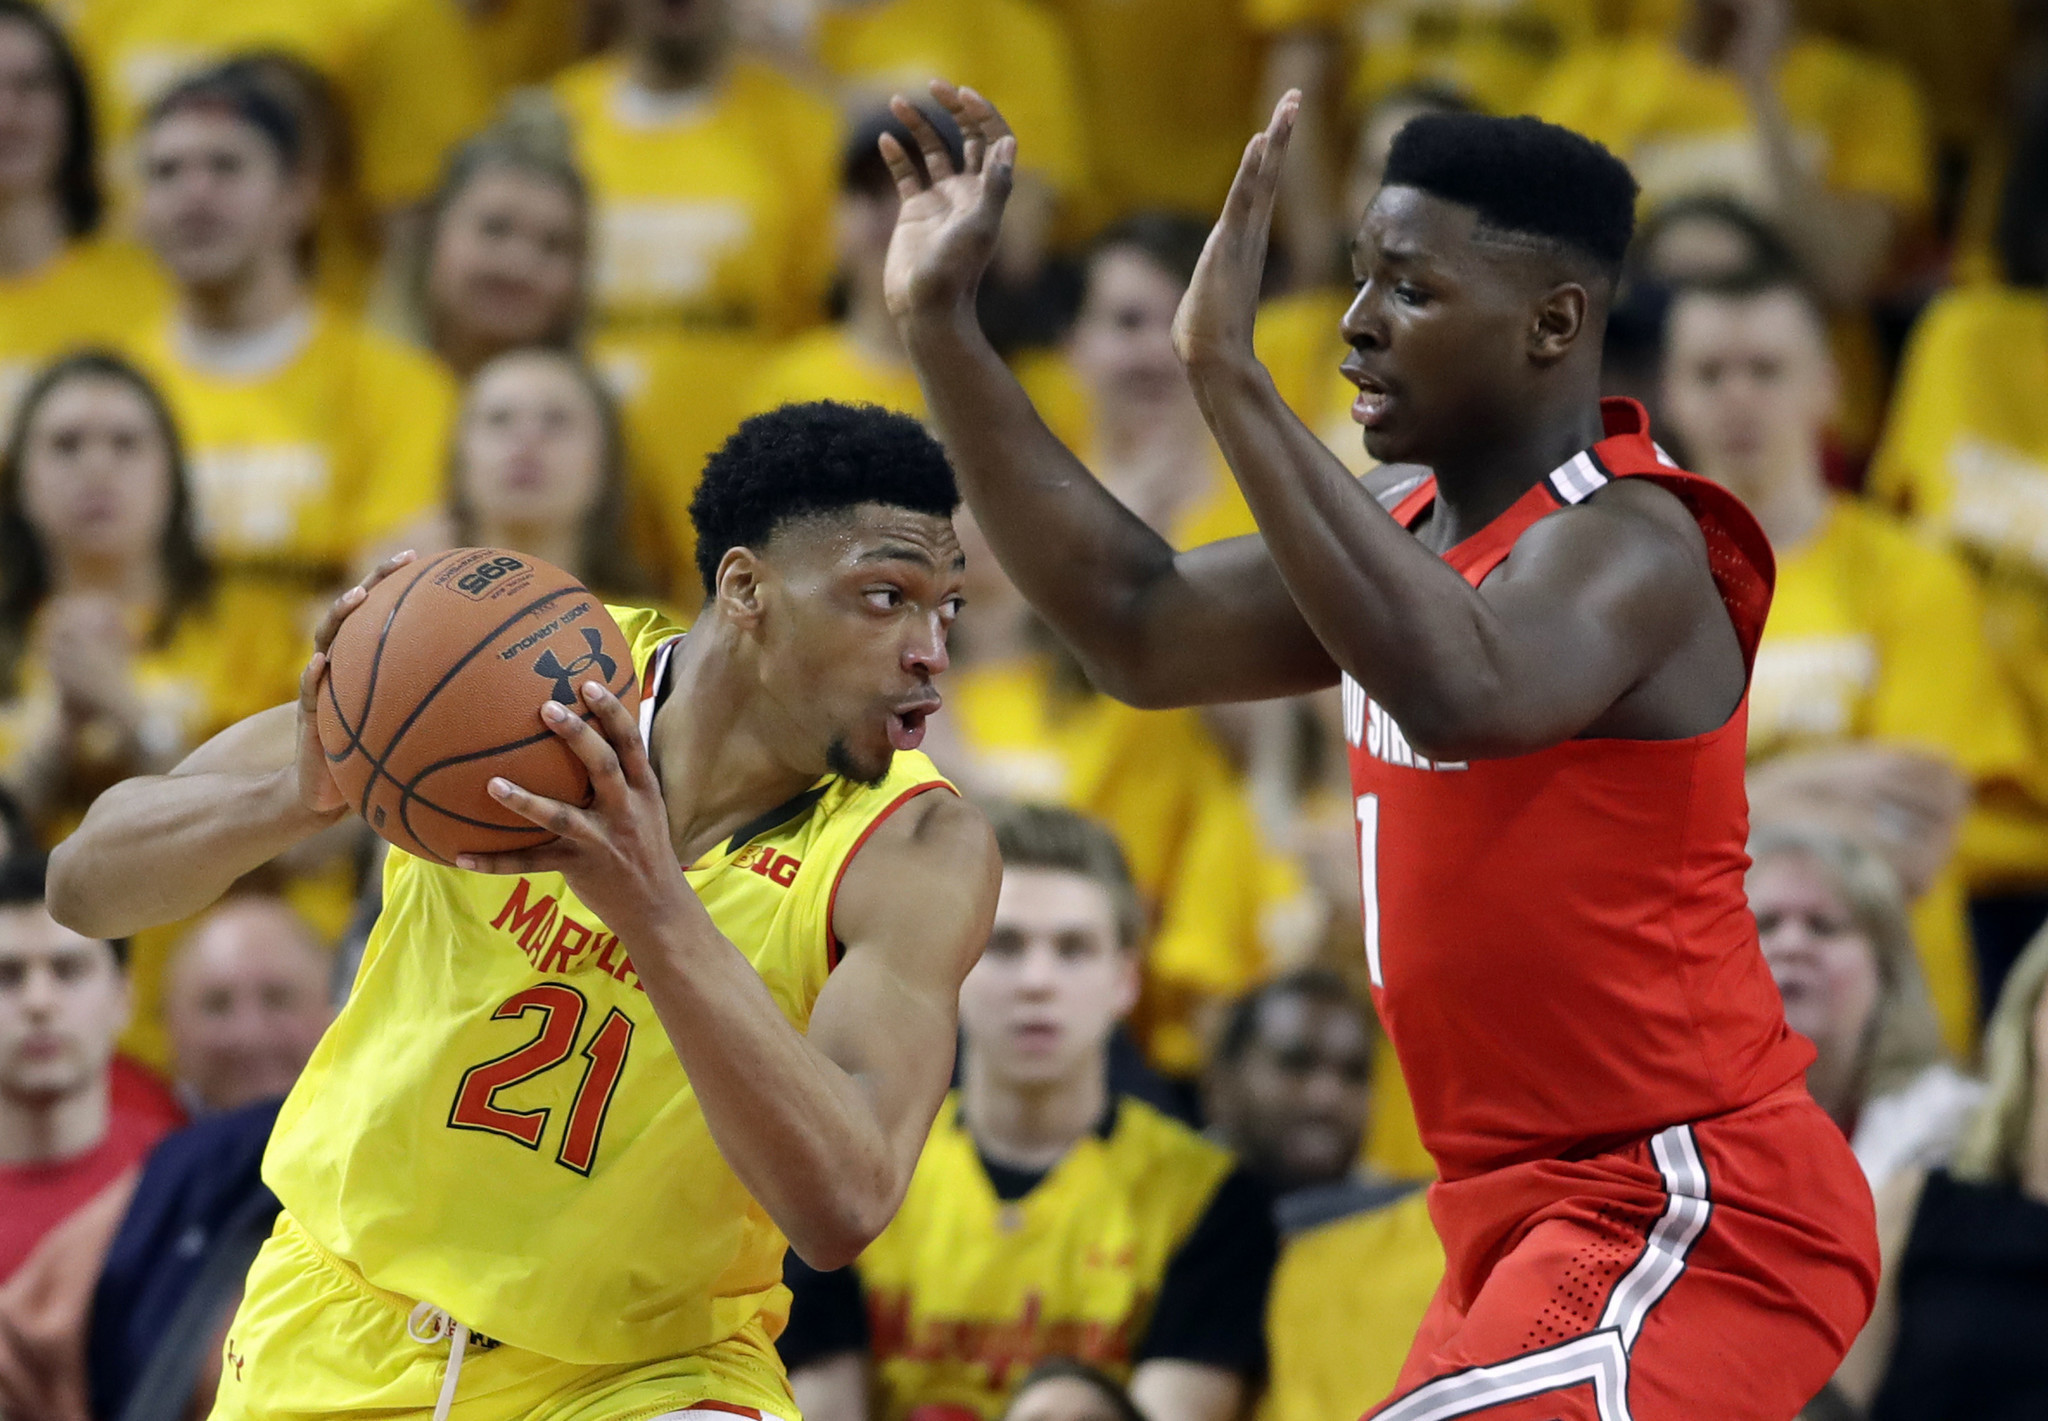 Bal-jackson-s-return-will-put-terps-in-thick-of-big-ten-basketball-race-next-season-20170525